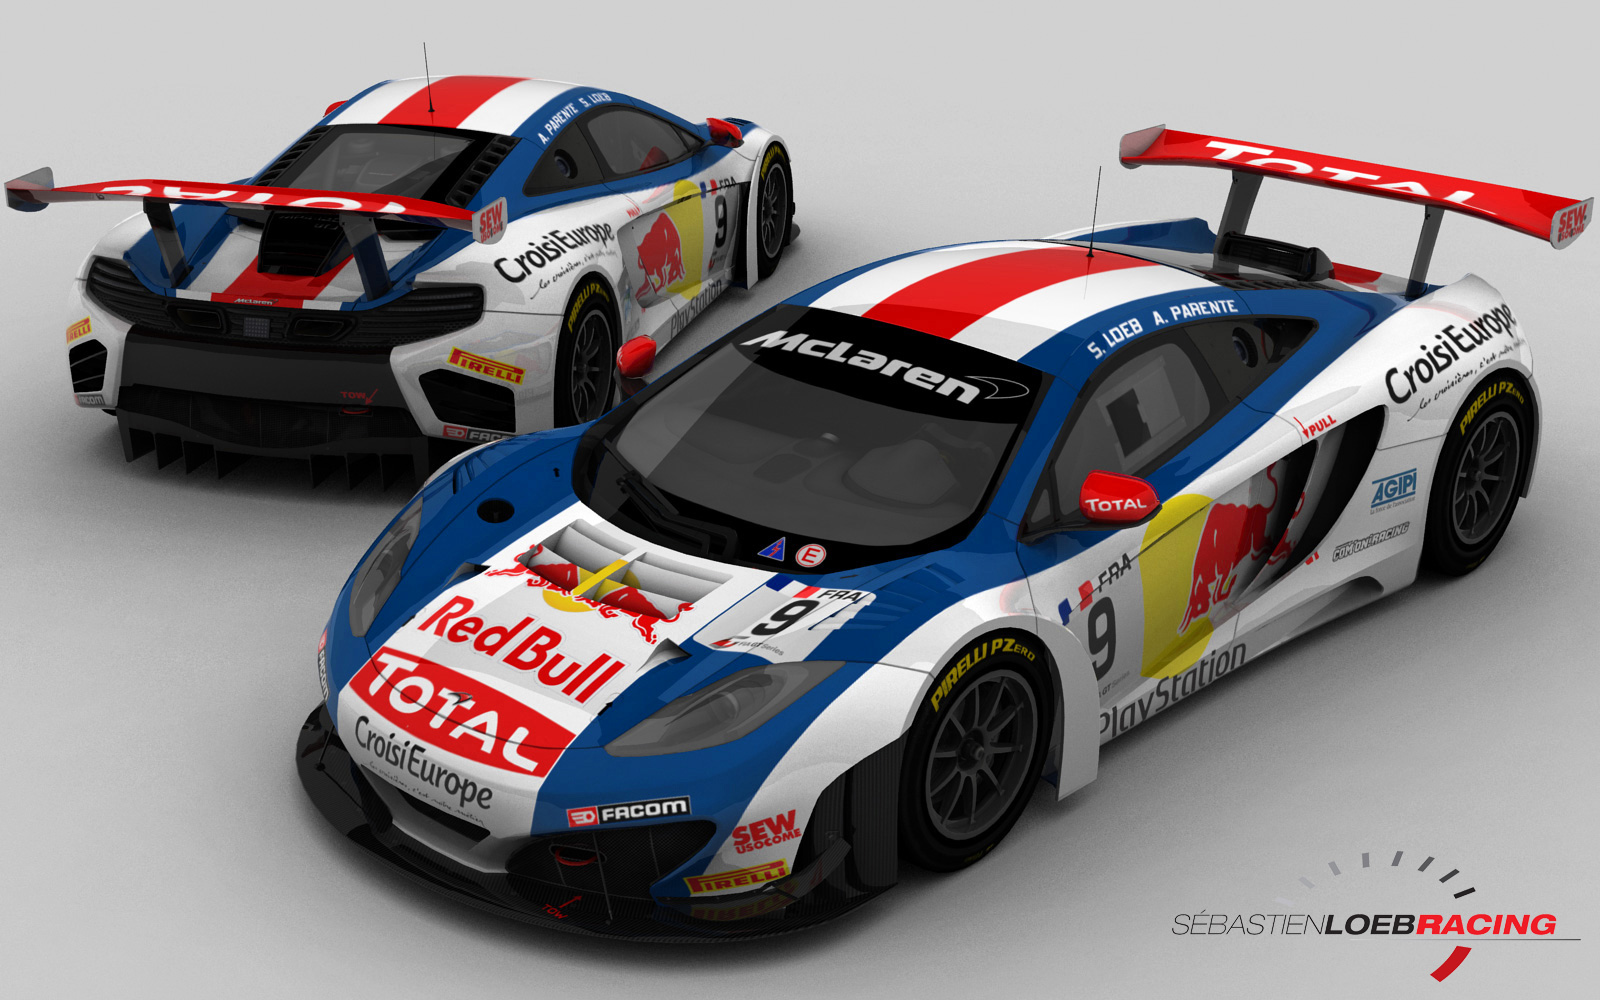 enduracers work for sebastien loeb racing renders sim racing news. Black Bedroom Furniture Sets. Home Design Ideas